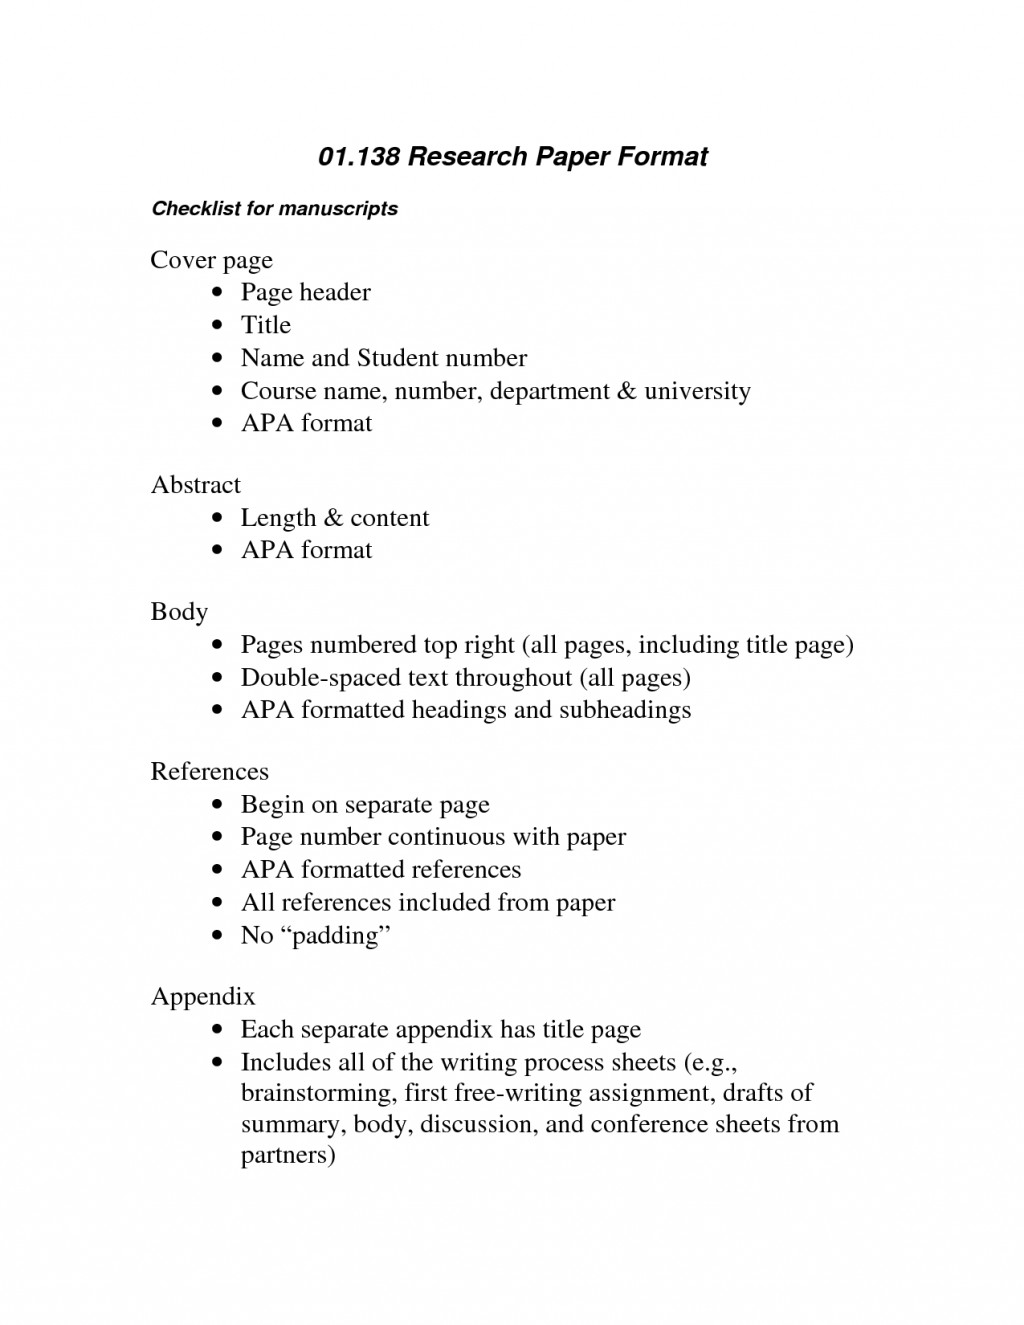 007 Research Paper How To Cite An Article In Apa Incredible A Journal Large